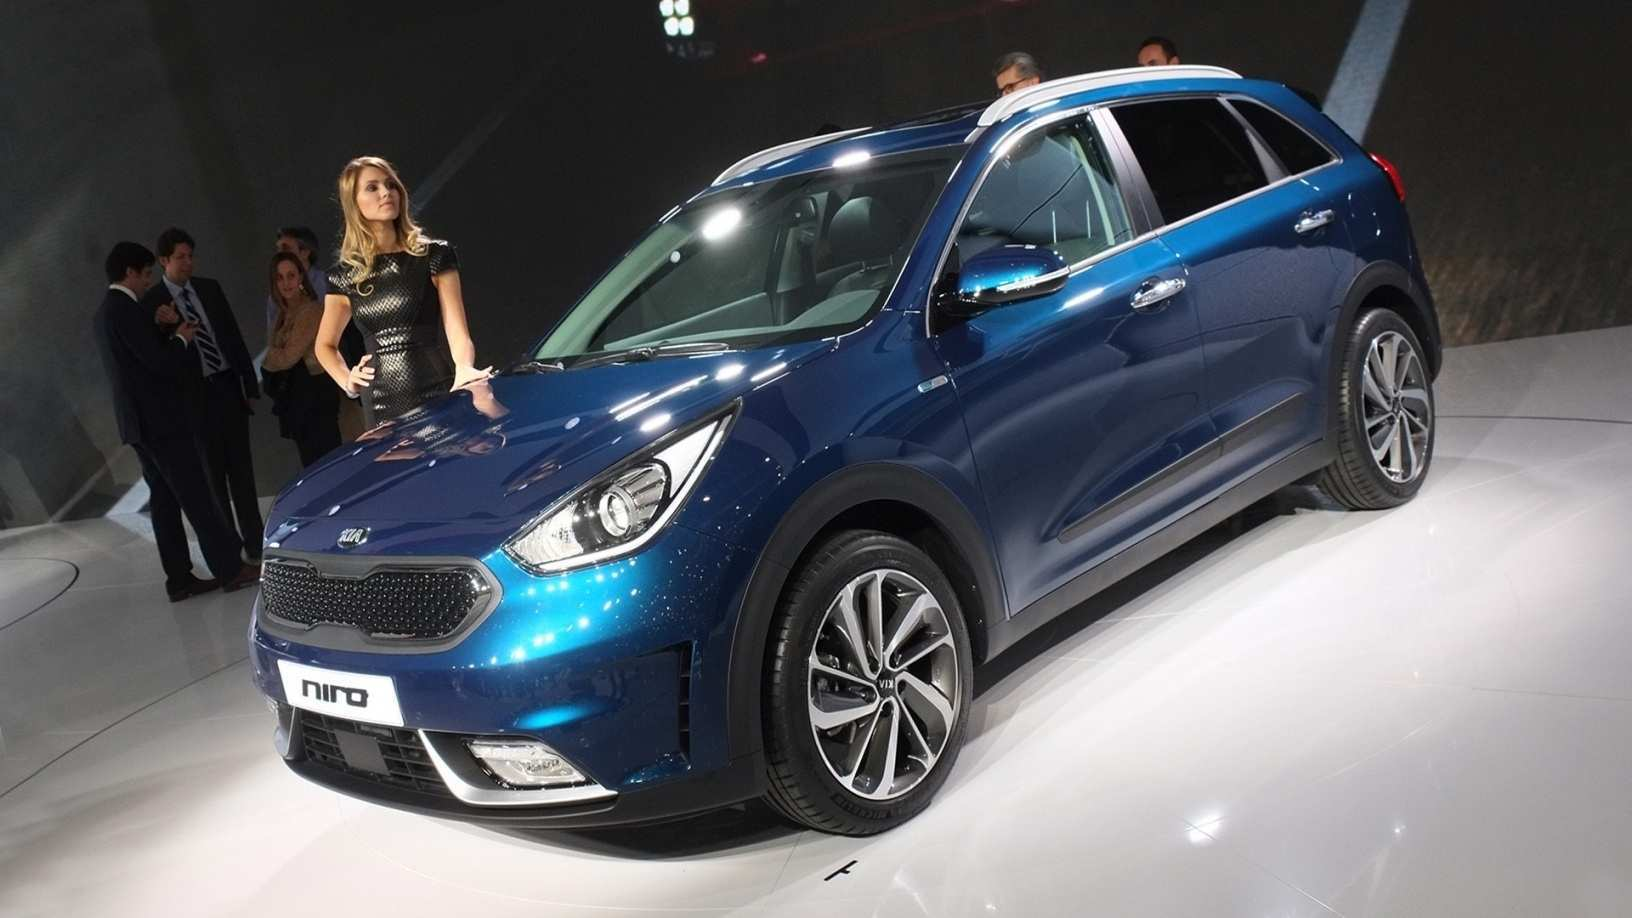 33 Great Kia Niro 2020 Release Date Redesign and Concept for Kia Niro 2020 Release Date